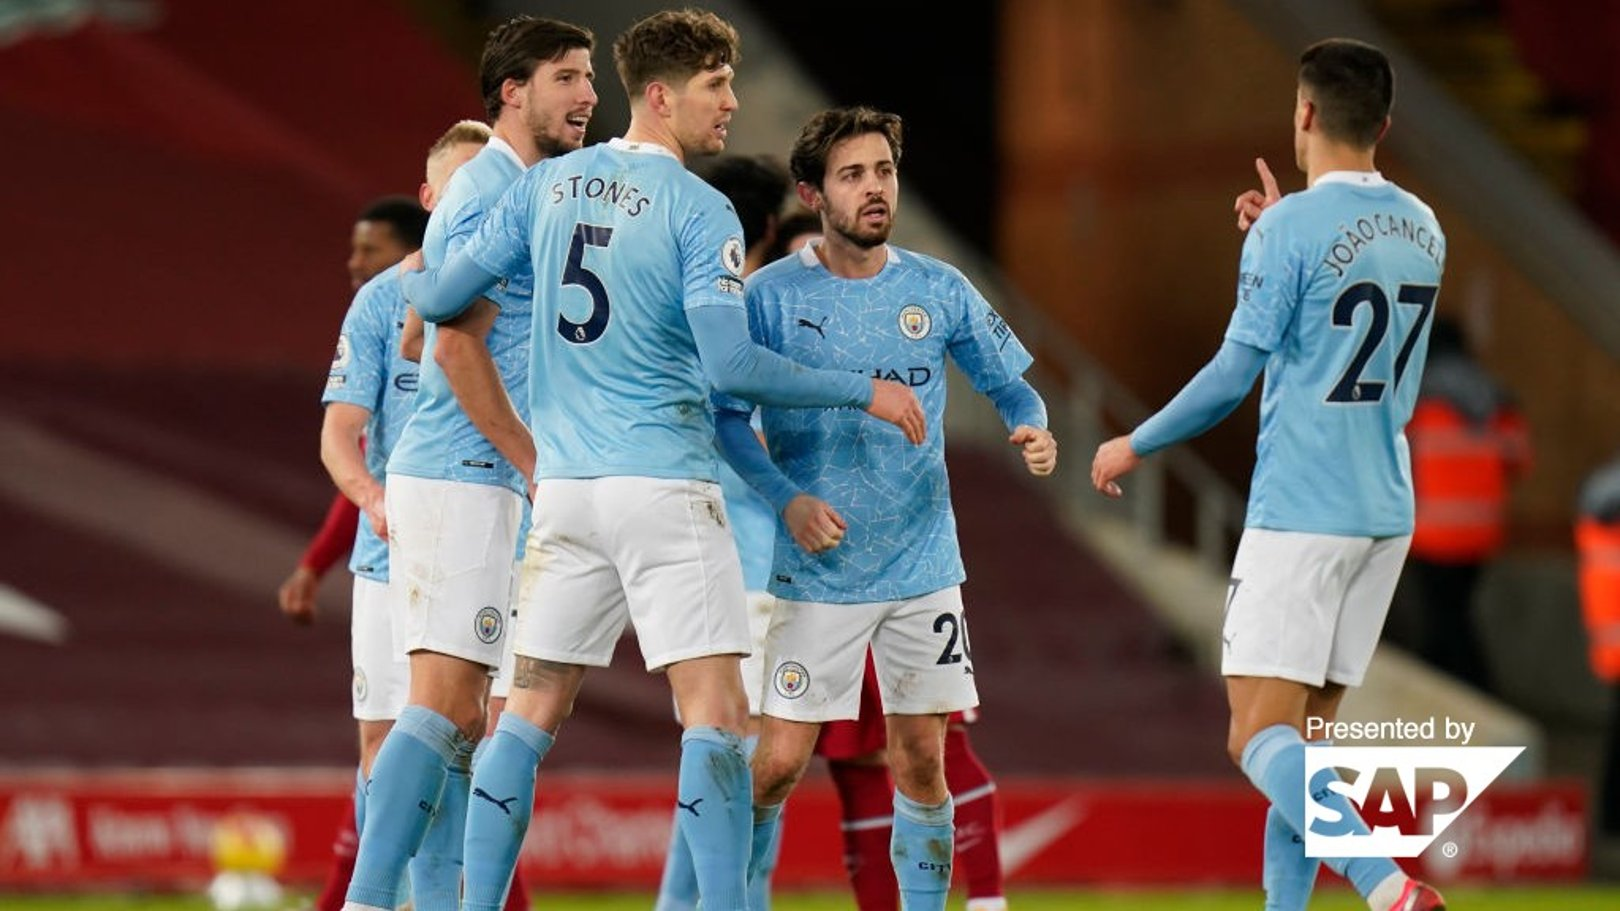 Stats: City's Premier League defensive improvement